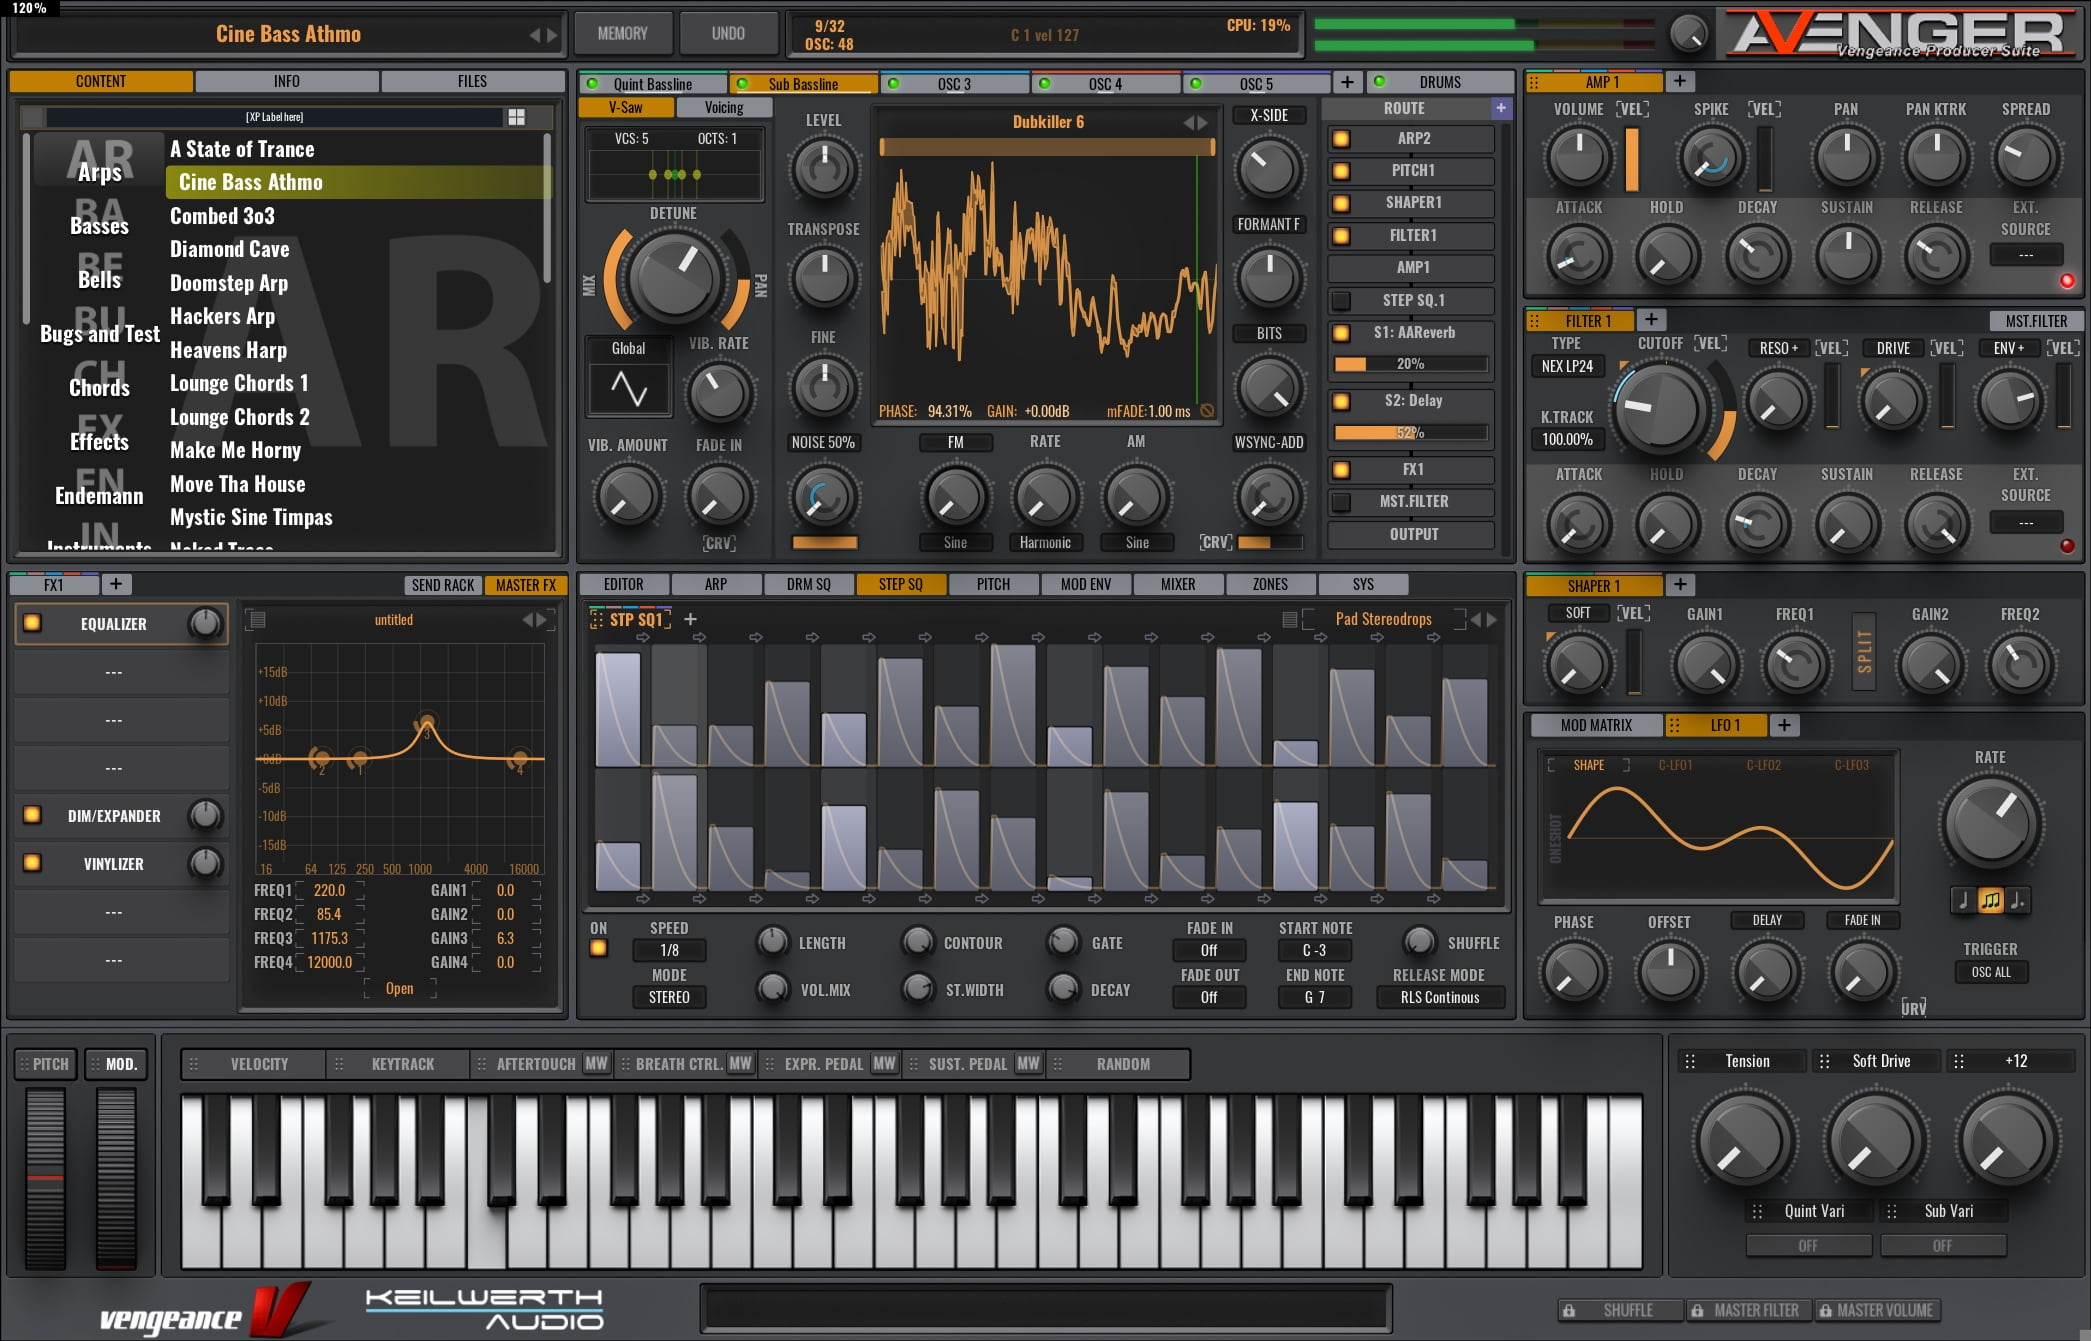 VST 4 FREE - Synthesizers Plug-ins